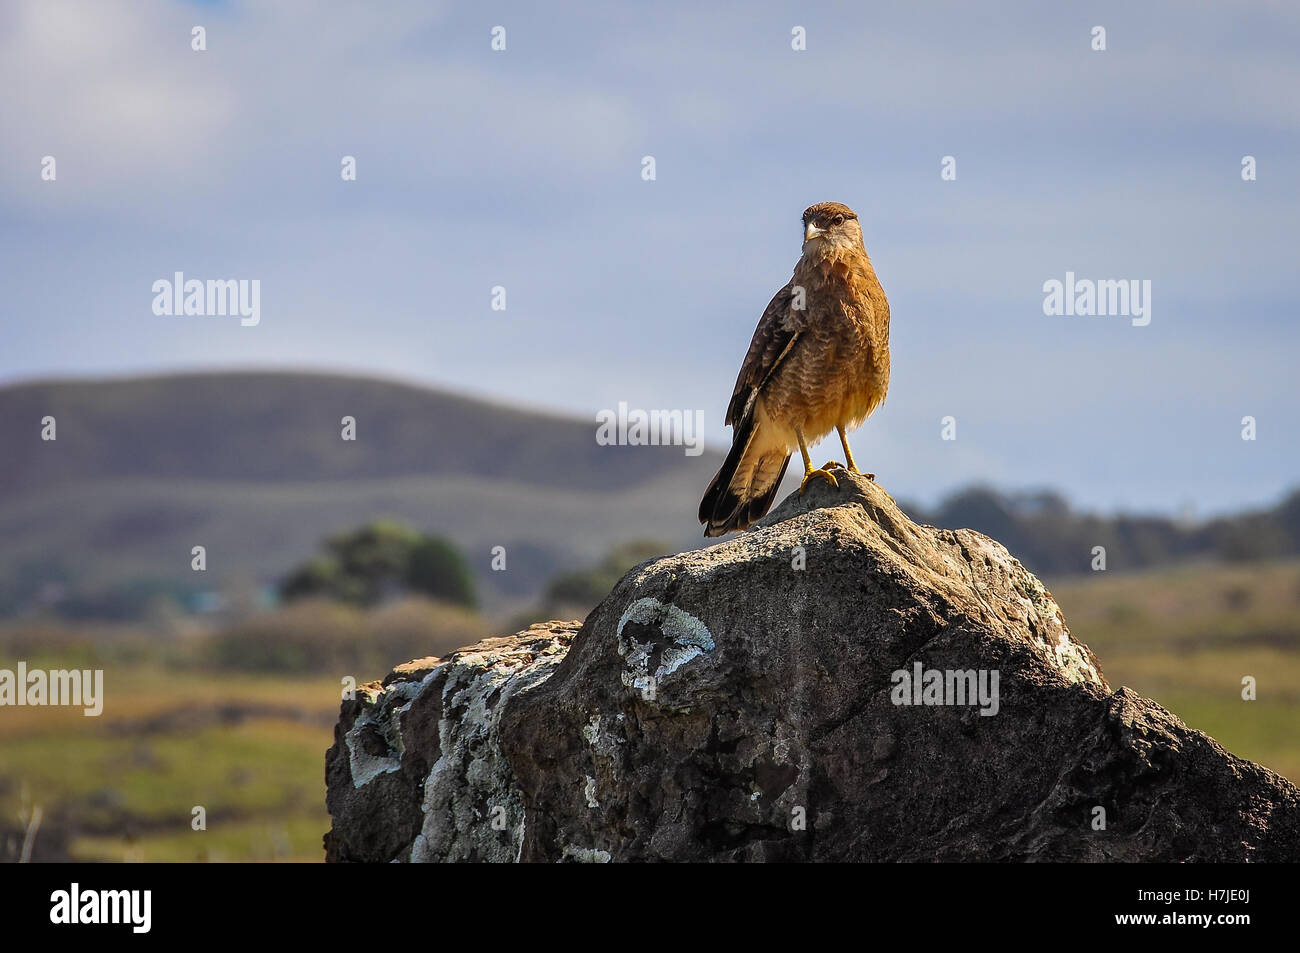 Falcon waiting on the rough coast of Easter Island, Chile - Stock Image